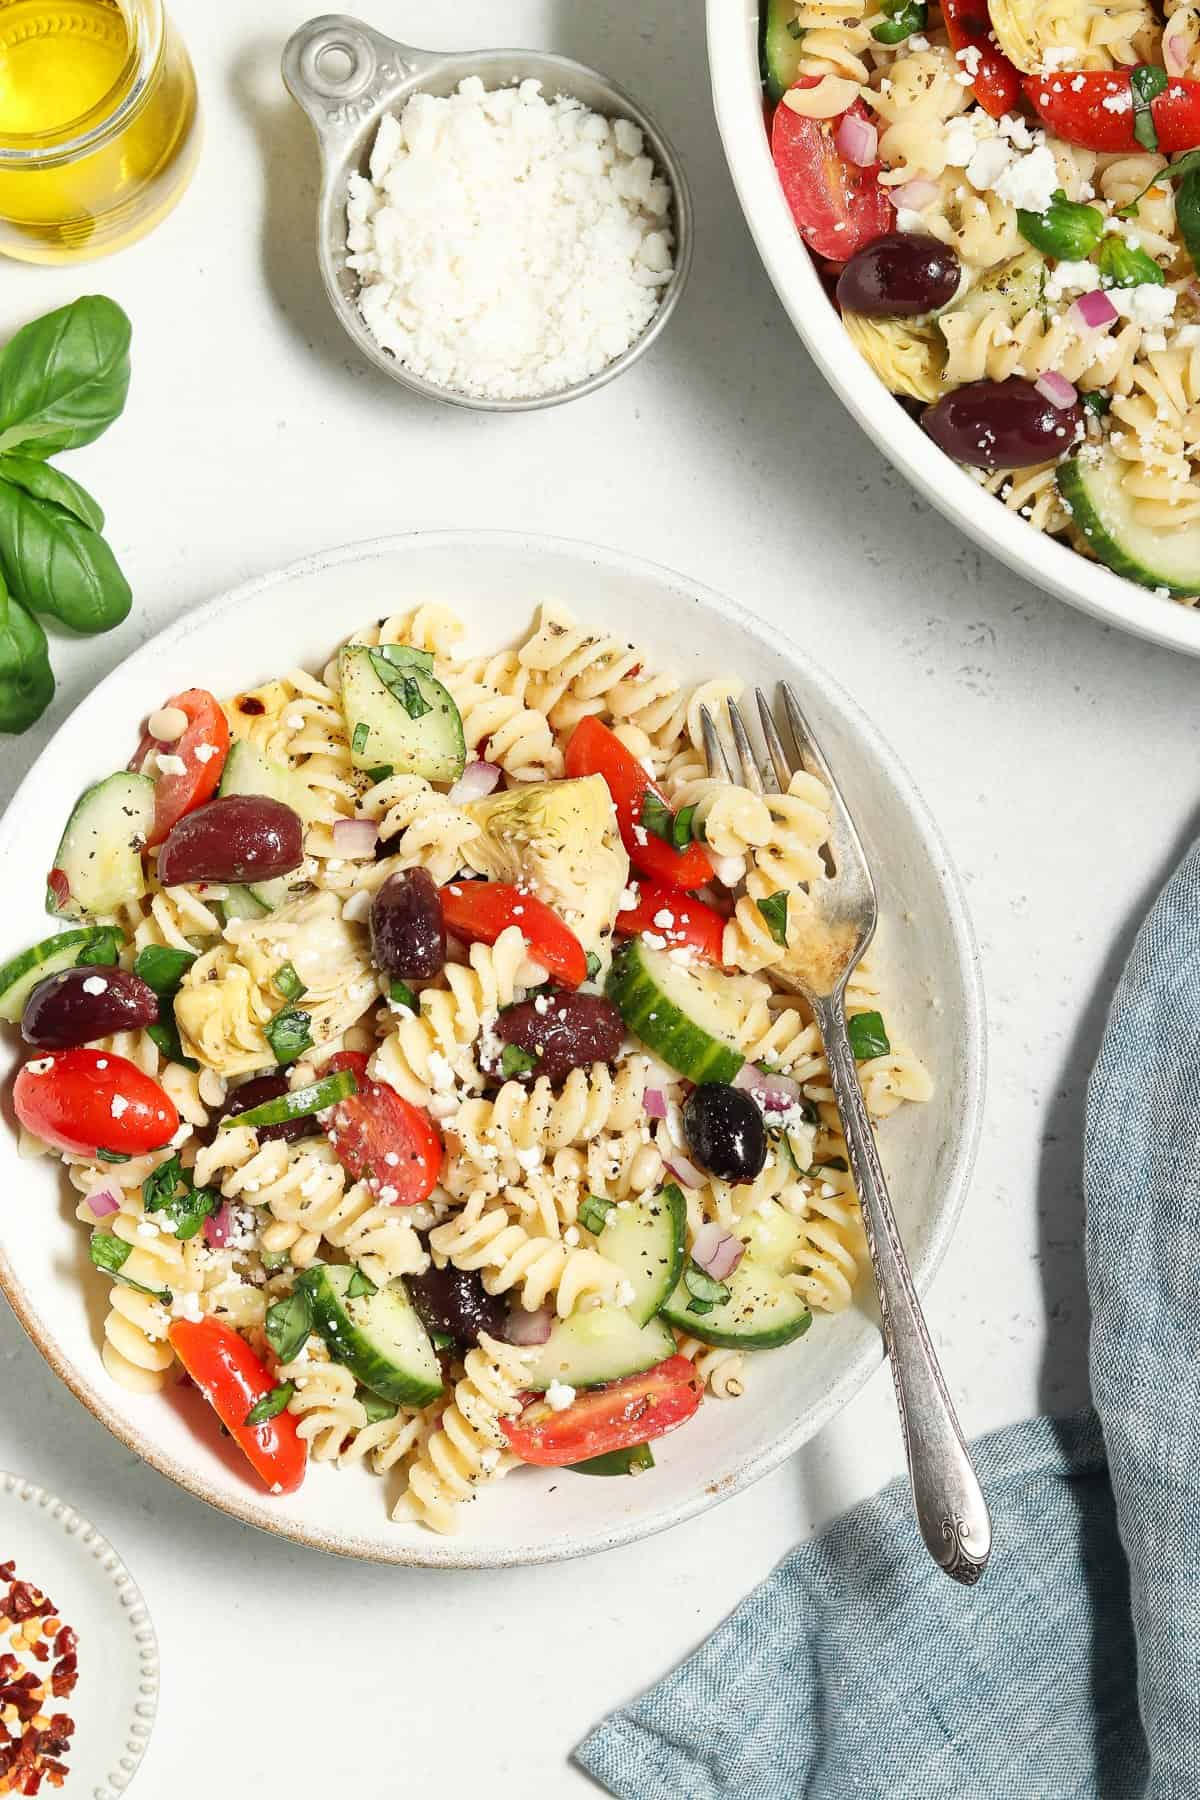 Overhead view of Mediterranean Pasta Salad in a small bowl and a larger bowl on the side. Blue napkin on the side.